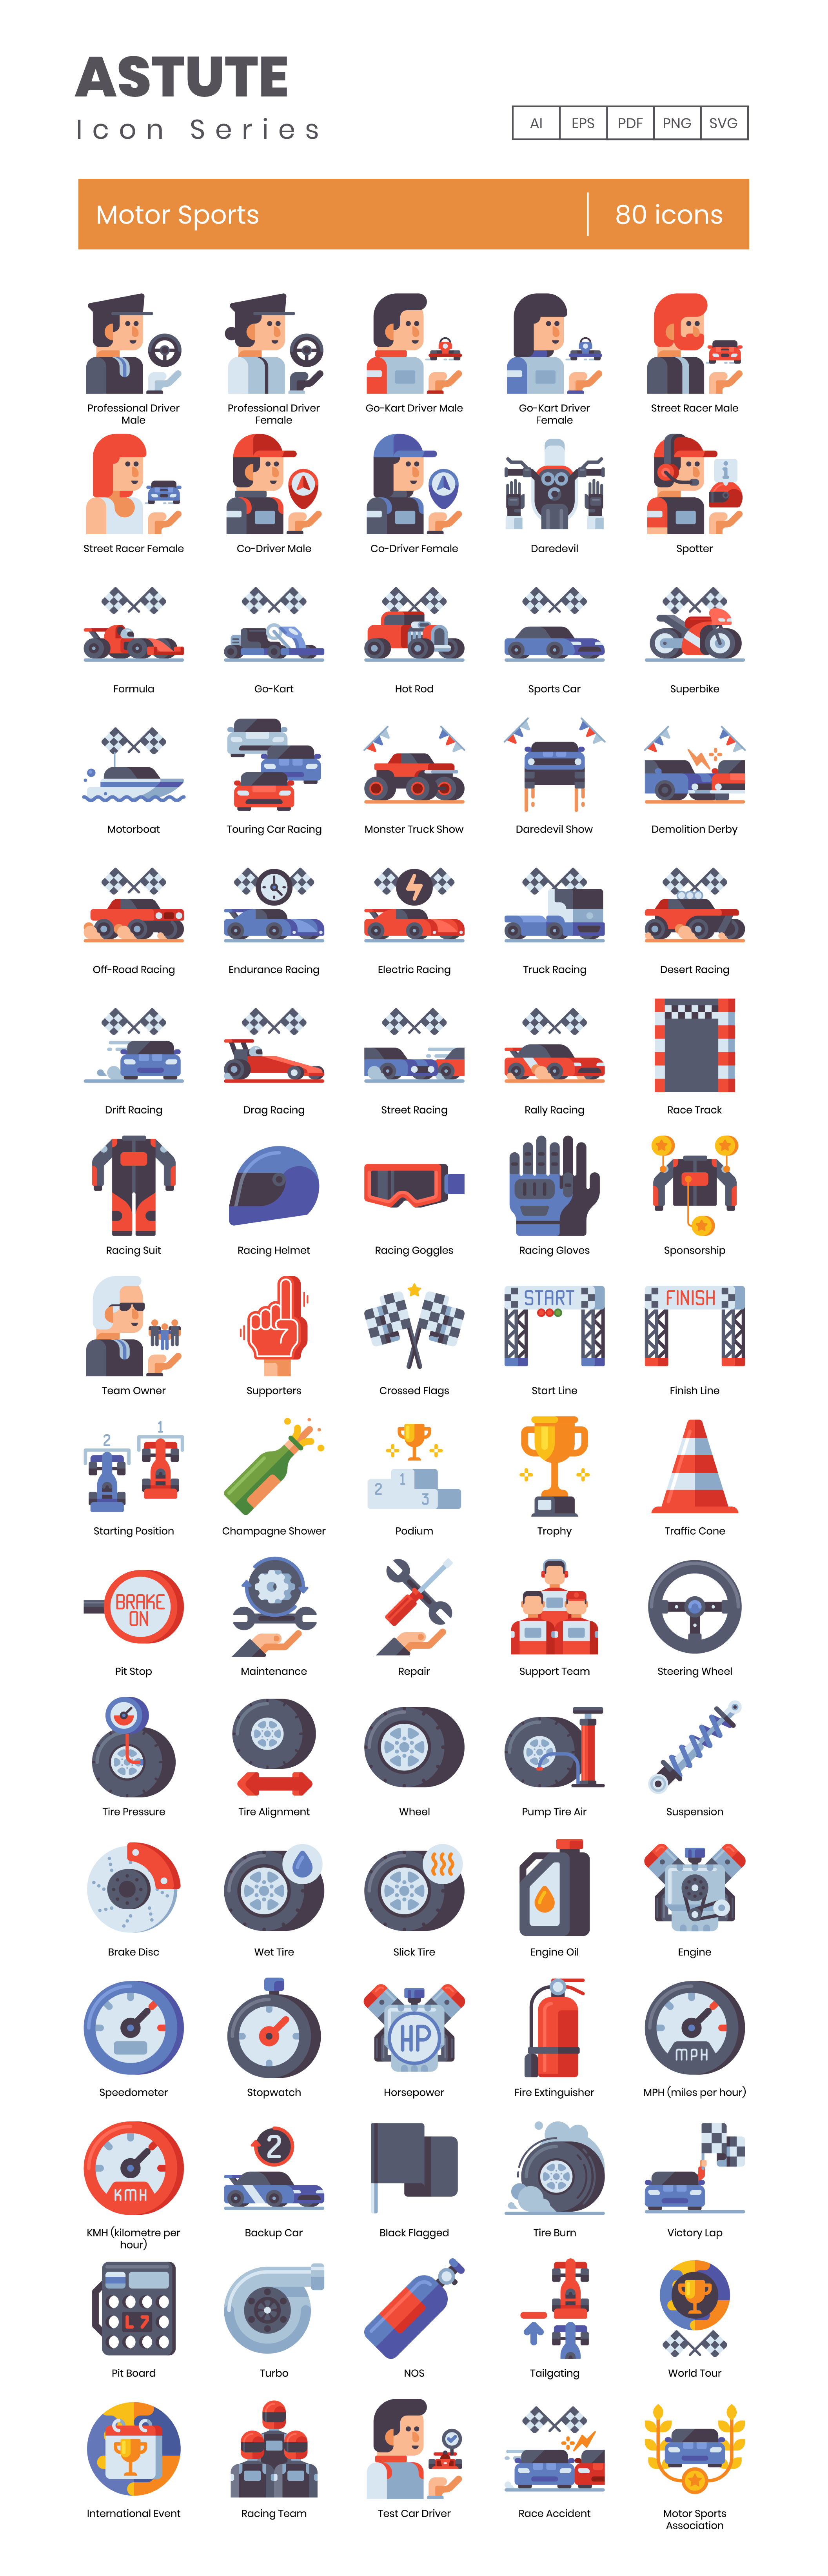 Motor Sports Vector Icons Preview Image